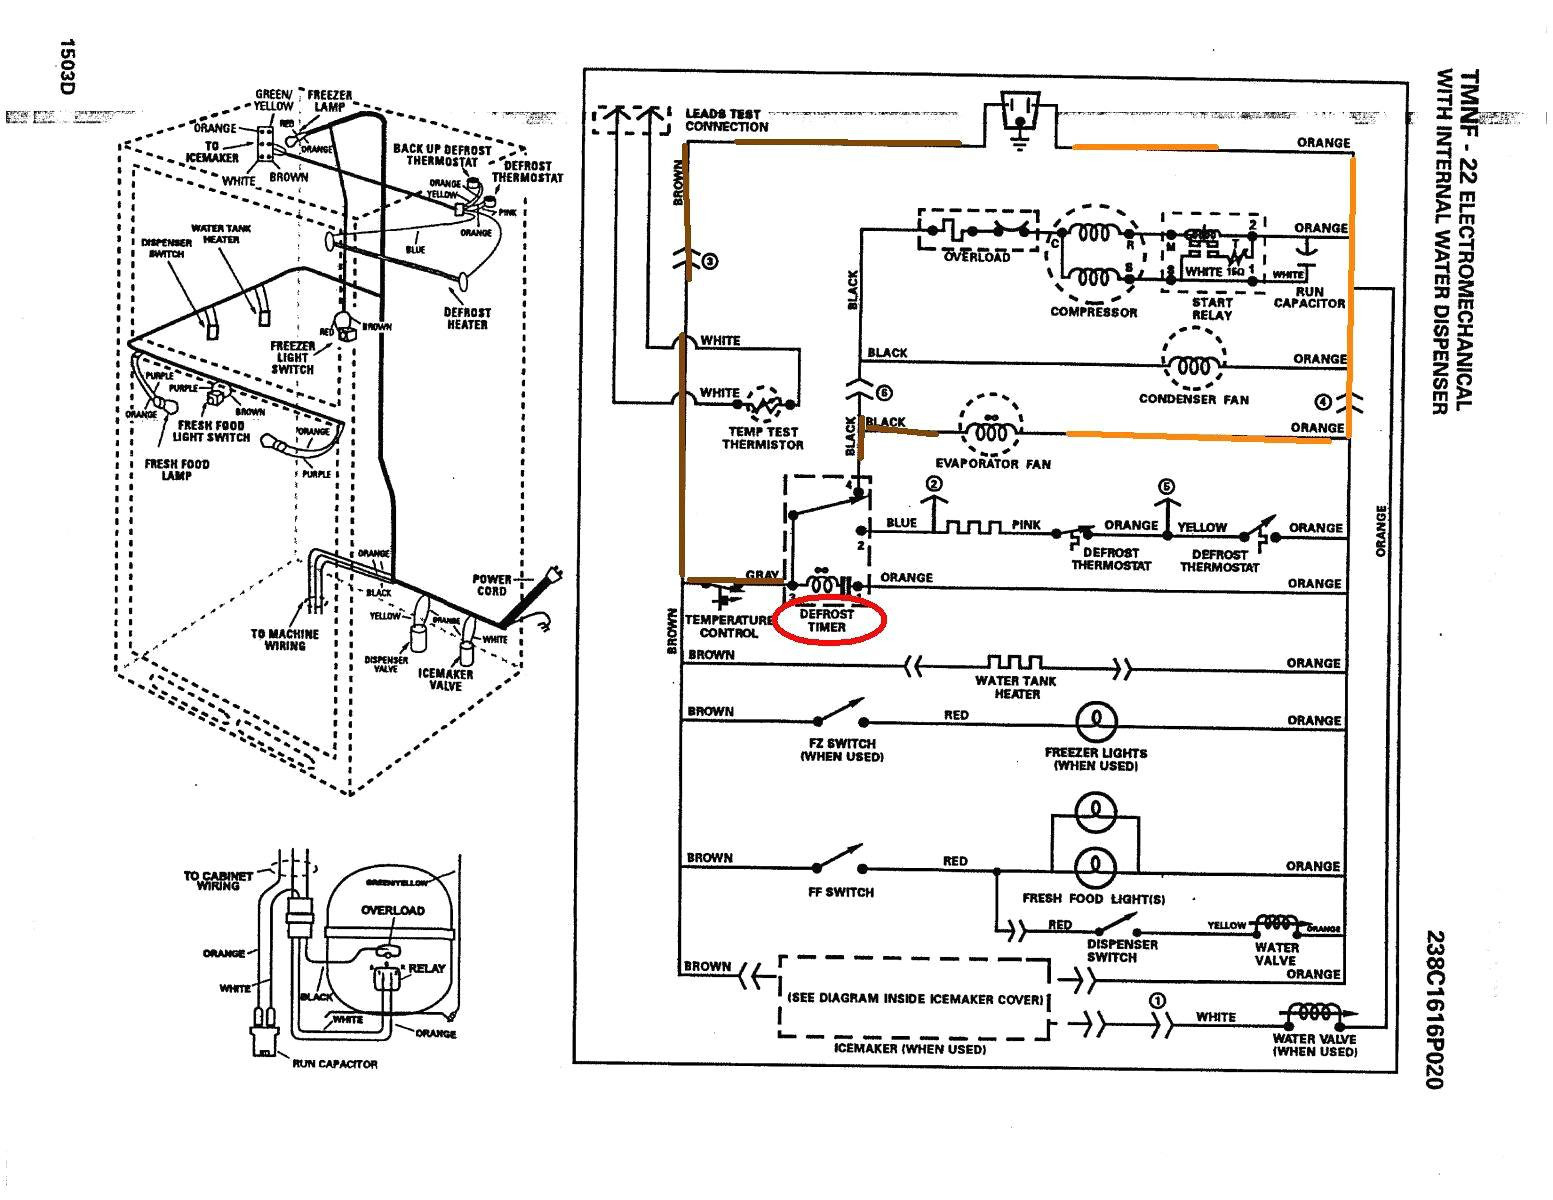 Ge Wiring Schematic - Explore Wiring Diagram On The Net • on ge air conditioner capacitor, ge microwave schematic, ge radio schematic, ge ice maker schematic,